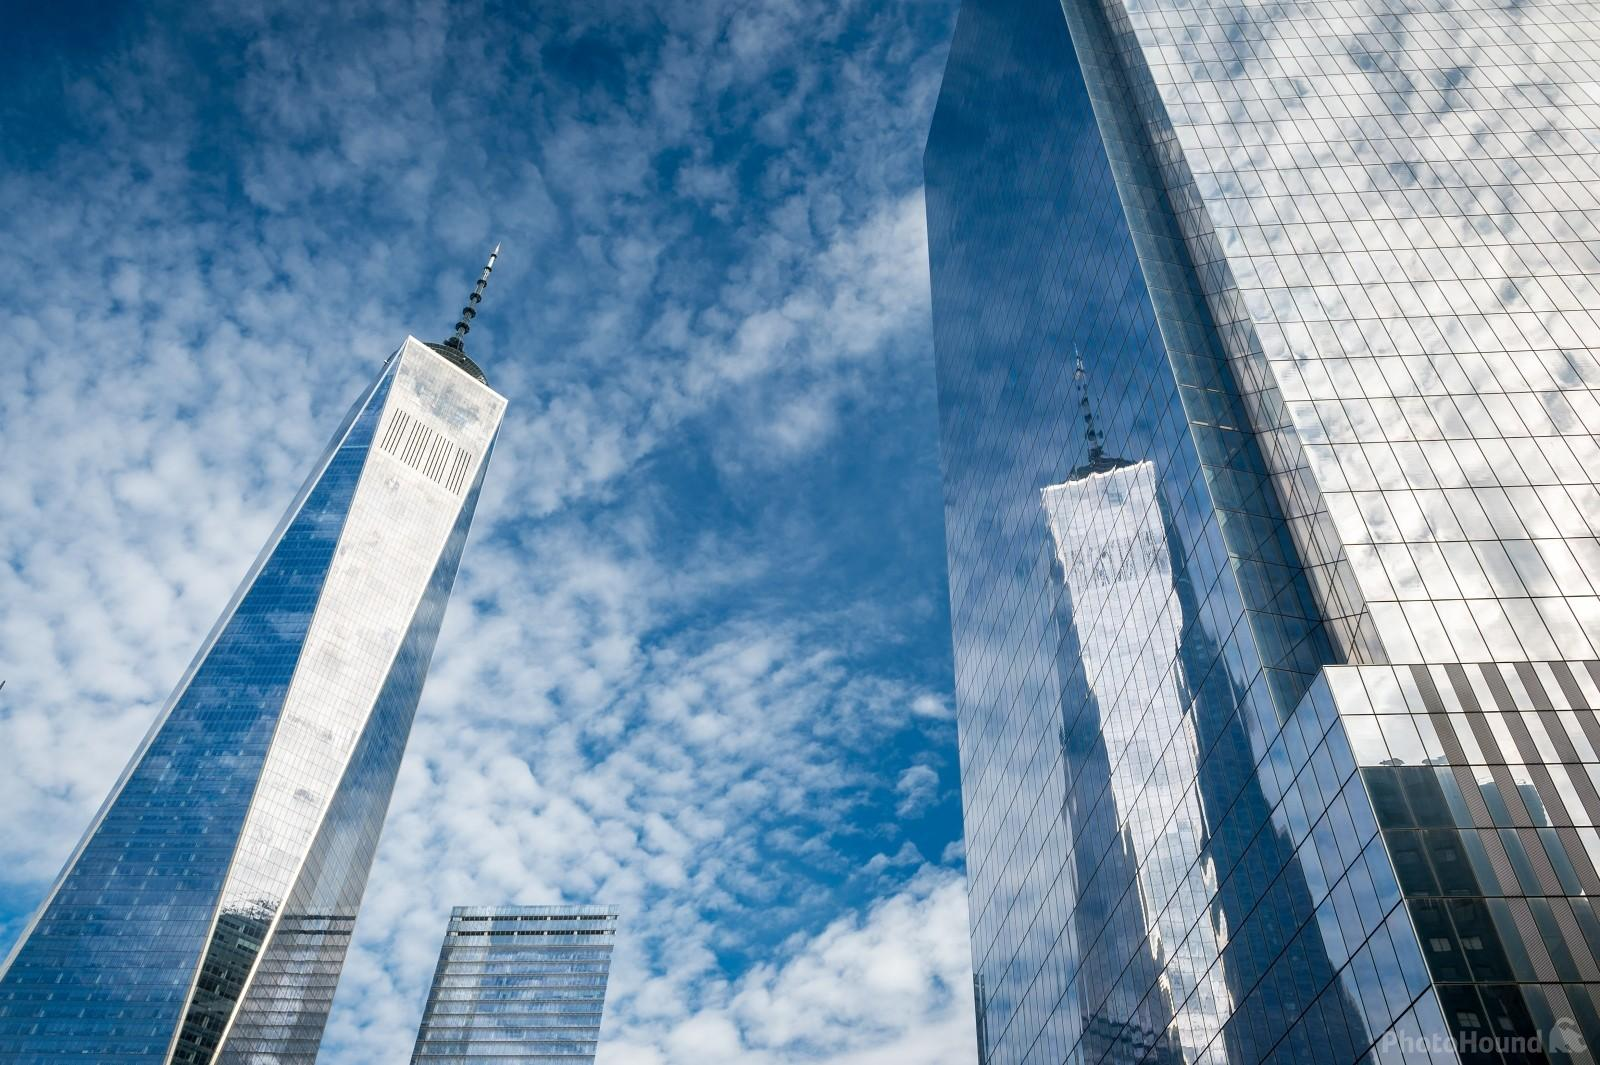 Image of One WTC from Liberty Street by VOJTa Herout